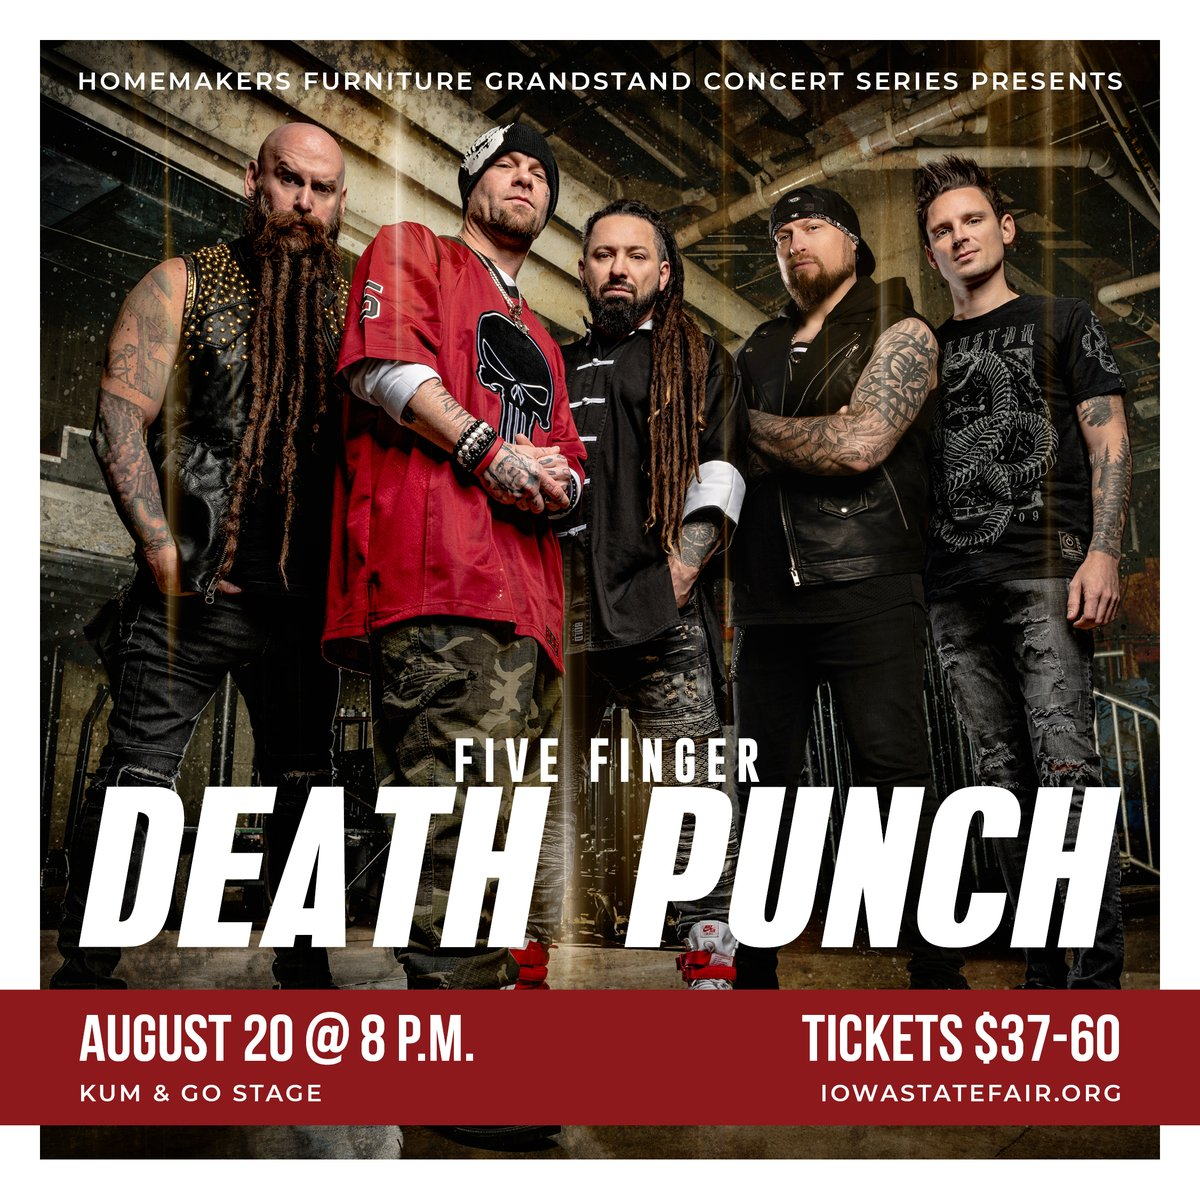 The latest in the Iowa State Fair Grandstand Concert Series presented by Homemakers Furniture is @FFDP! The band will perform on Friday, August 20 at 8 p.m. Tickets go on sale to the public this Friday (Jan. 29) at 10 a.m. Are you in? 👊 #Grandstand2021